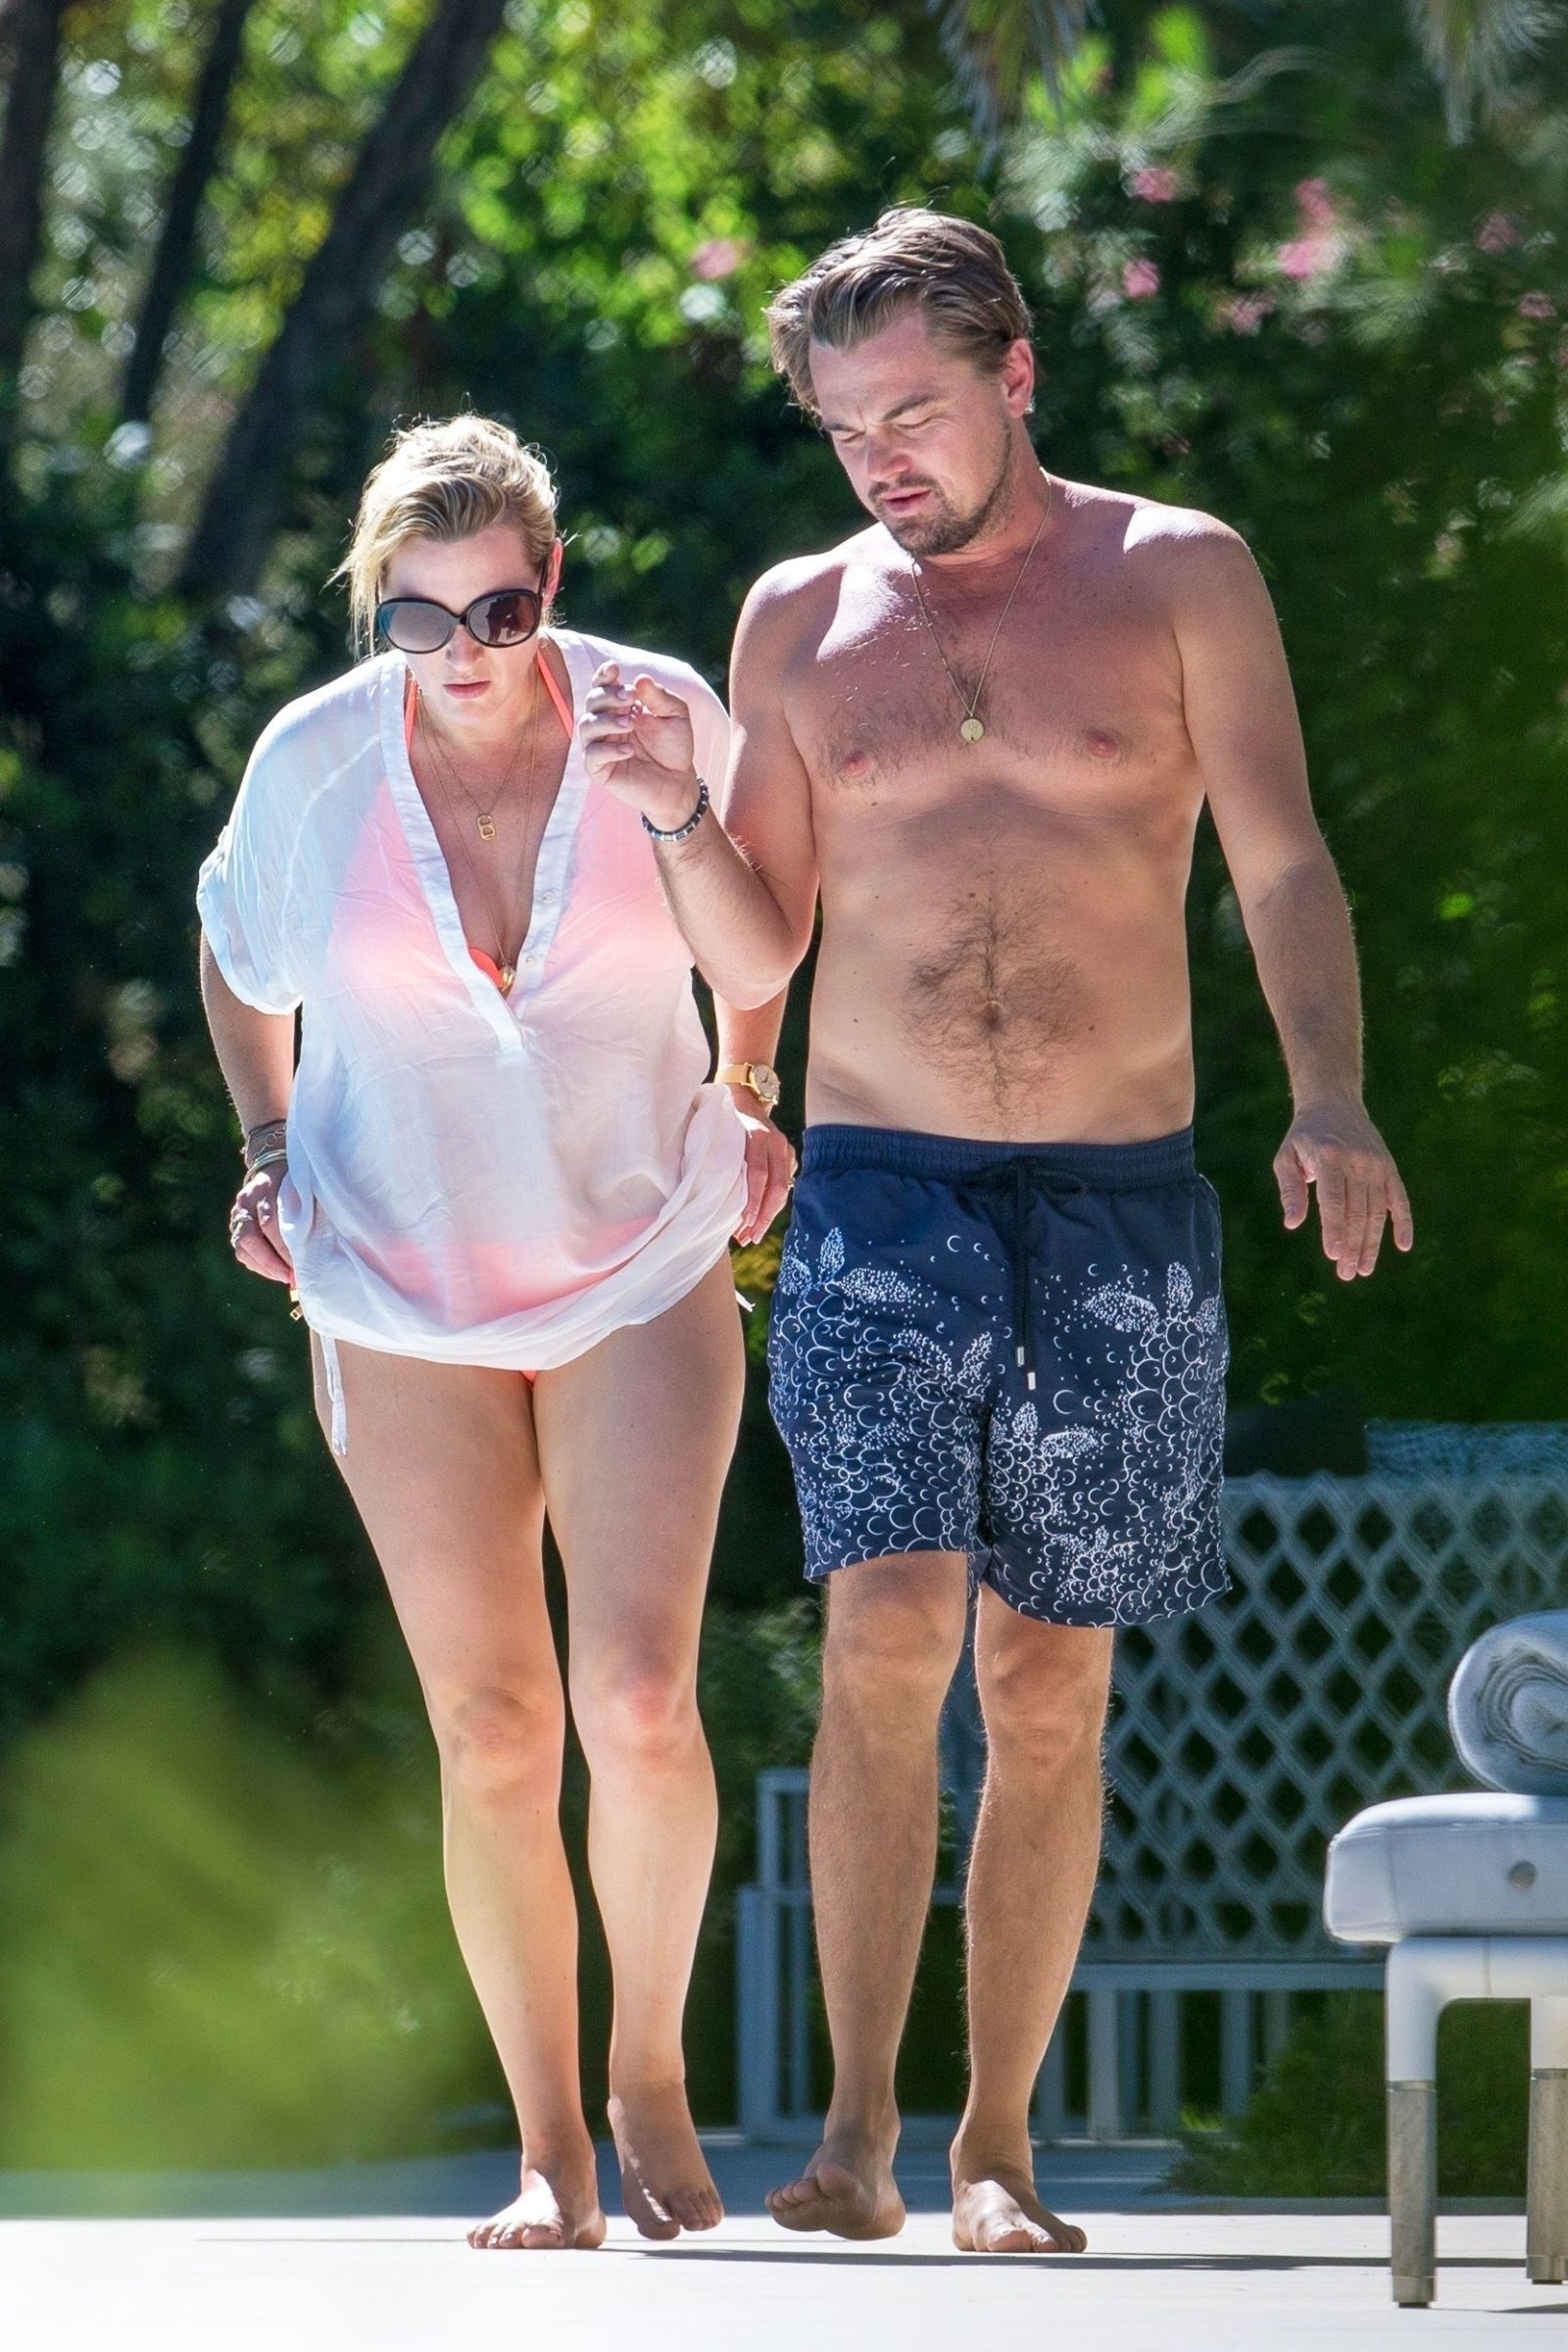 Leonardo Dicaprio And Kate Winslet Vacationed In St Tropez